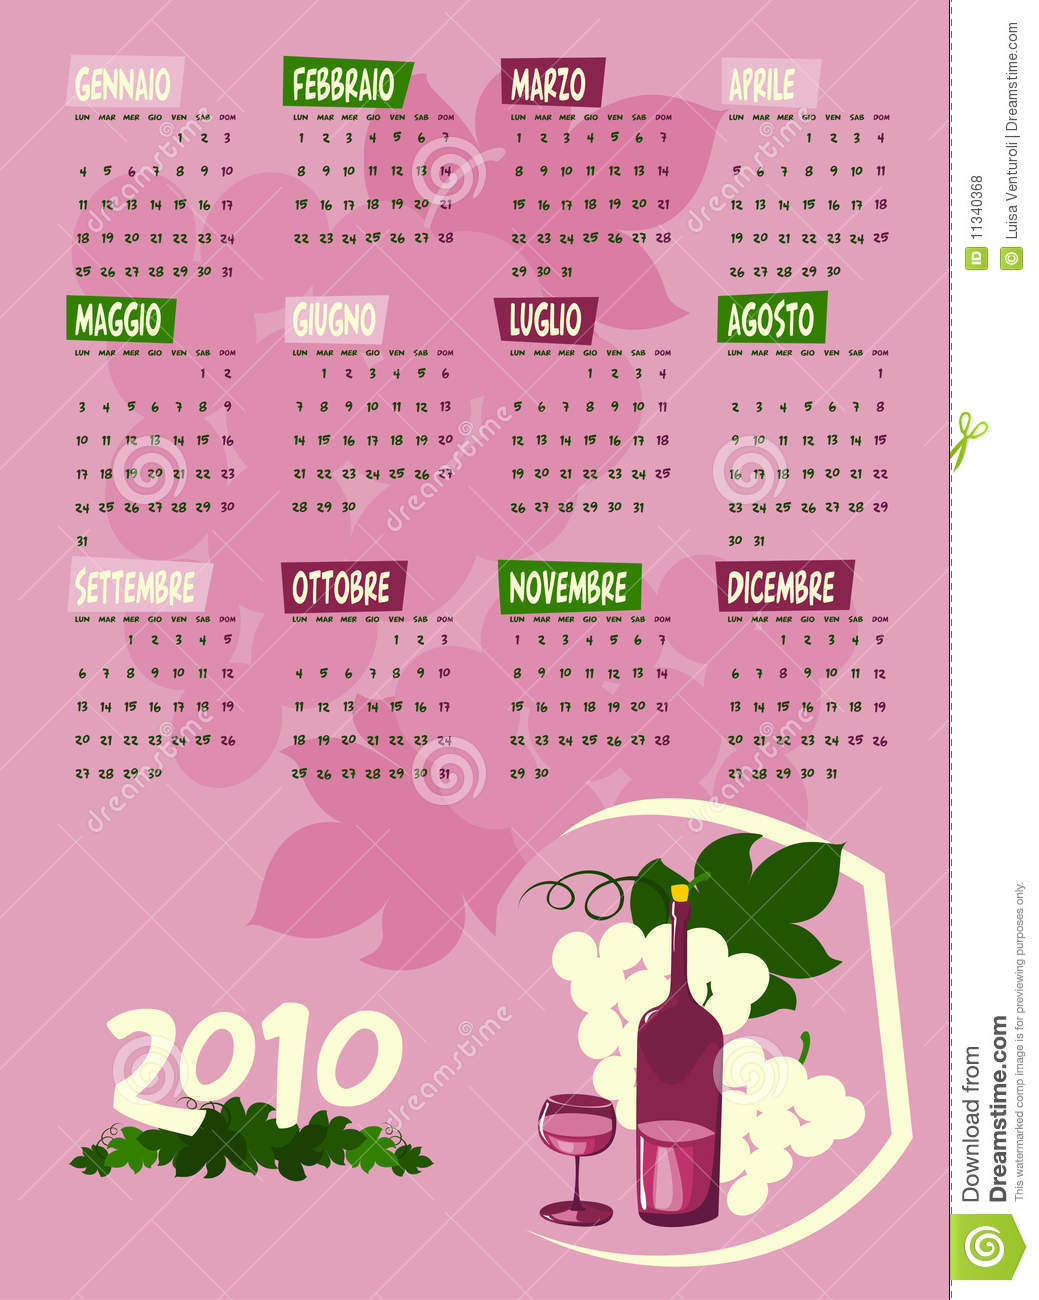 Next Year Calendar : Calendar of next year with grapes and wine royalty free